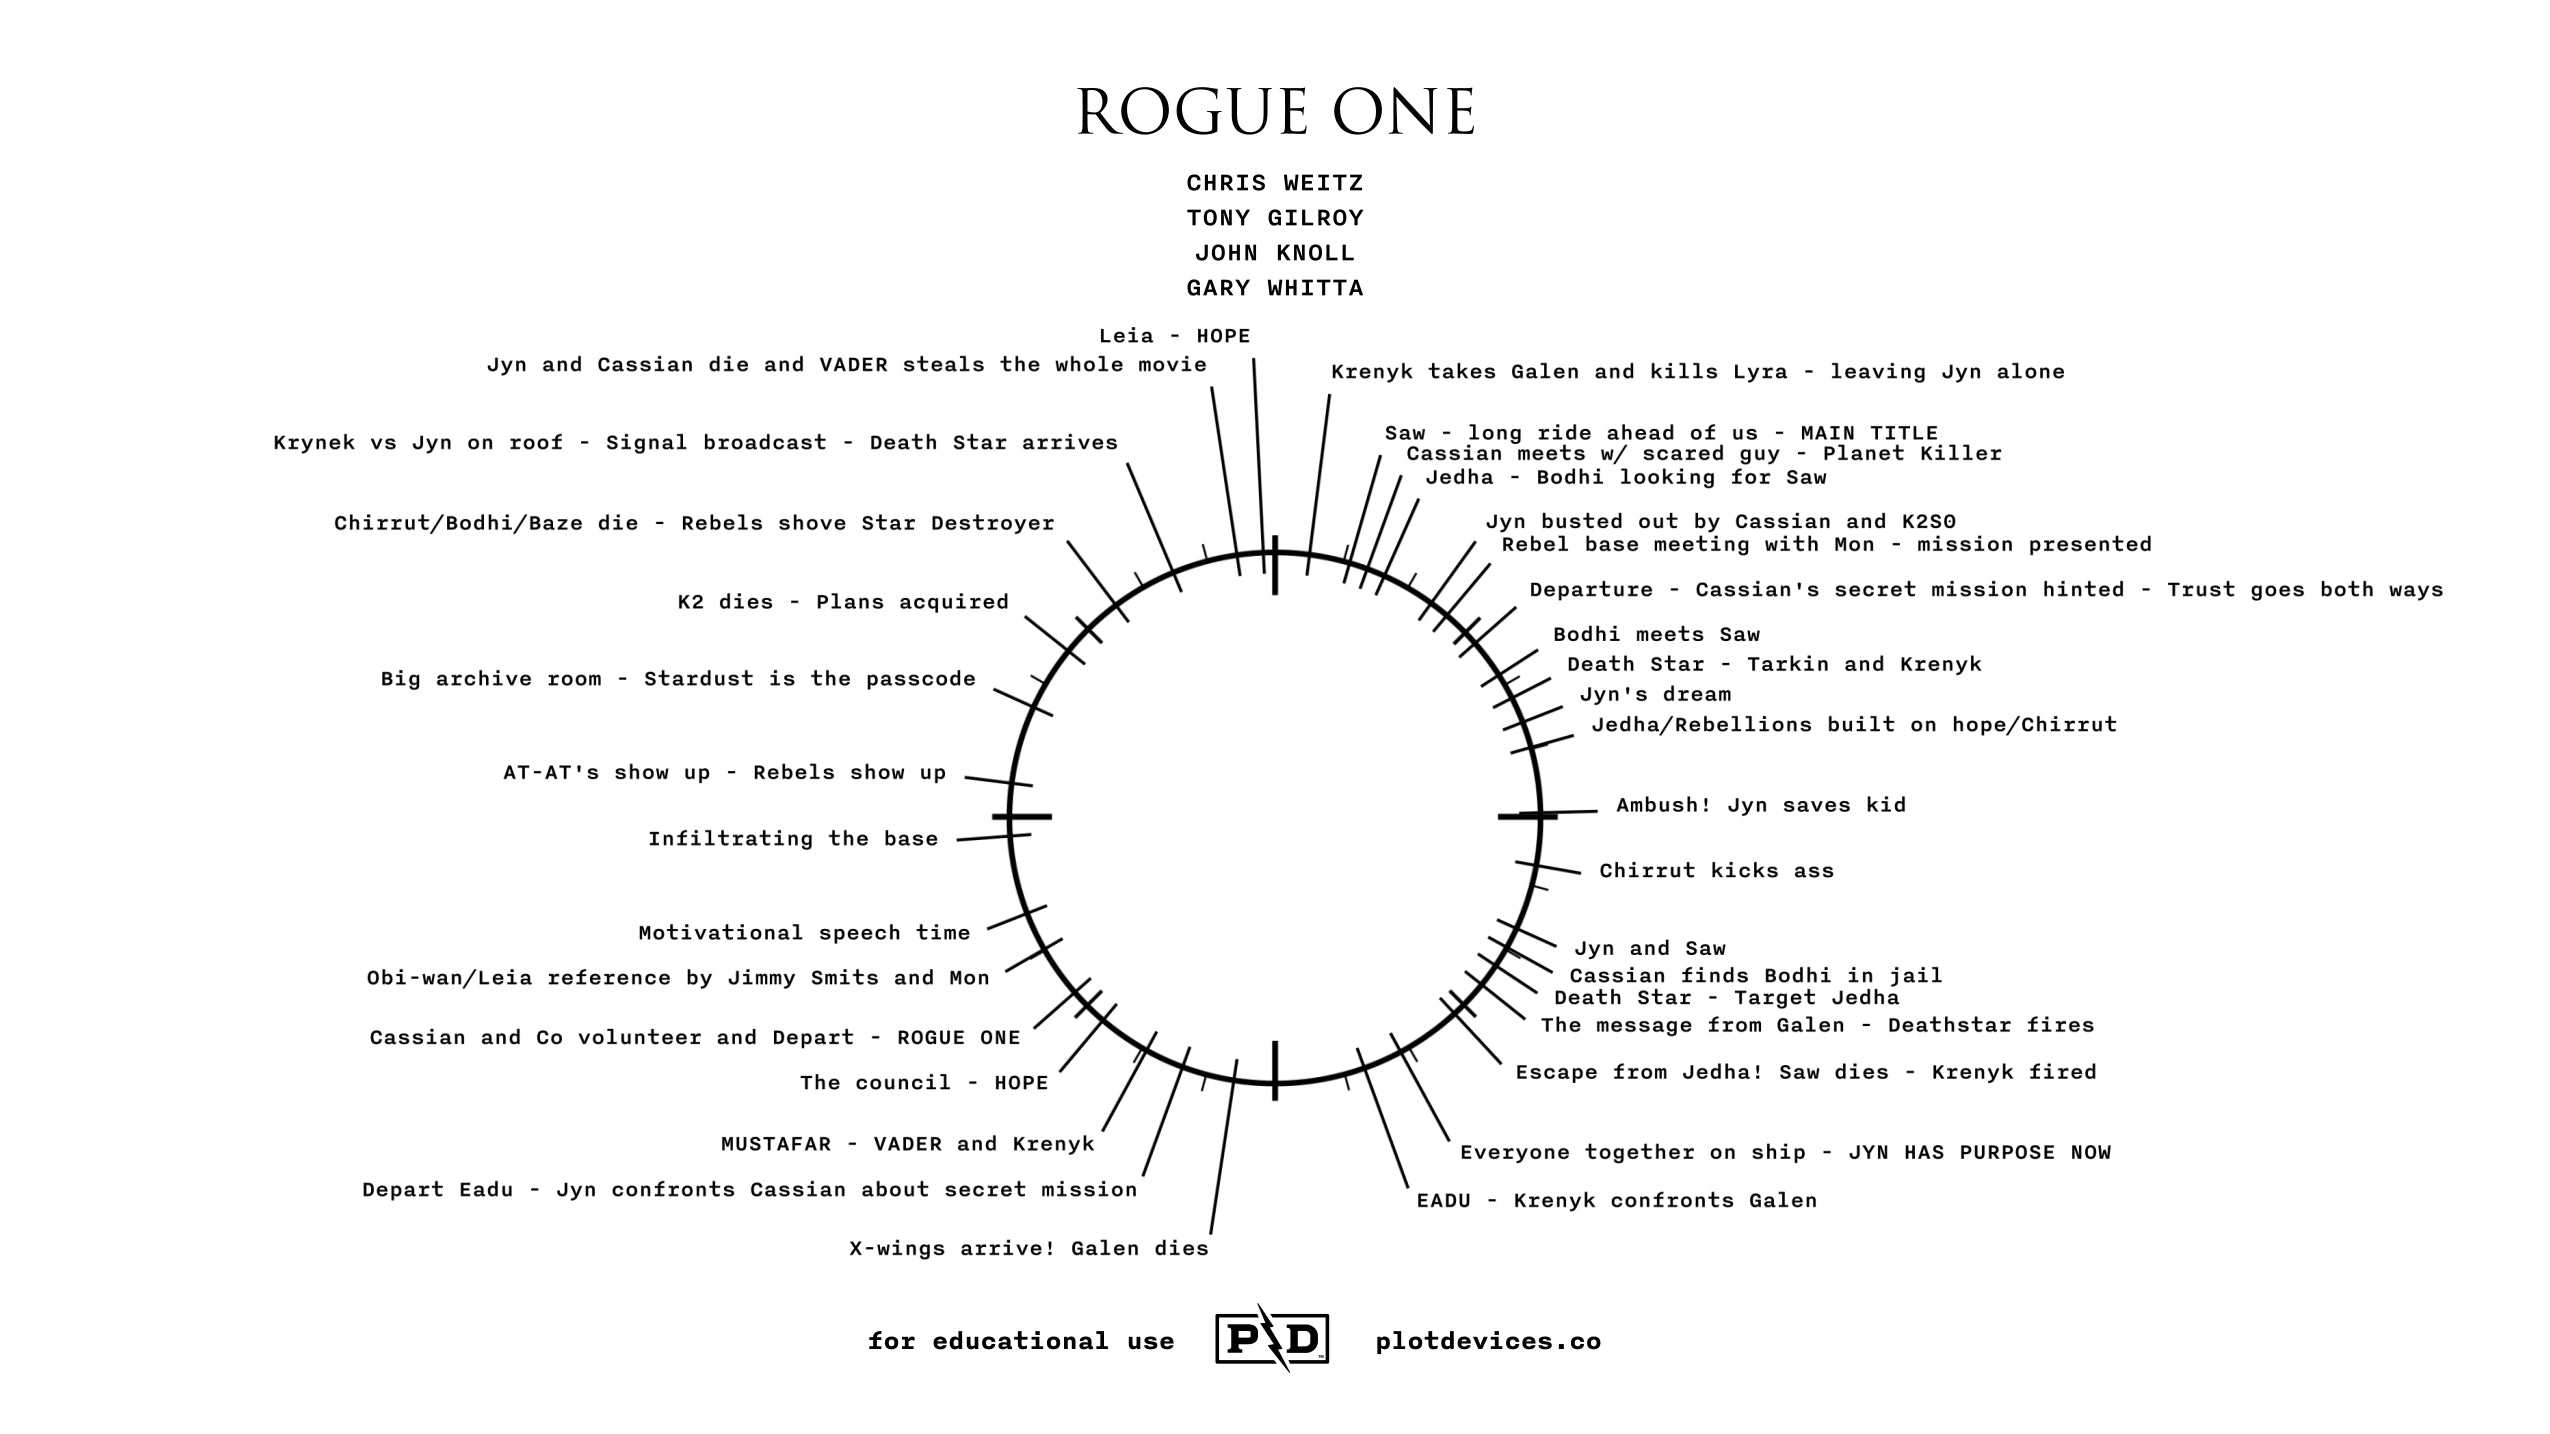 Rogue one a star wars story plot devices story about star wars that takes place before star wars as usual weve watched the movie and used the storyclock notebook to visualize the films pooptronica Images